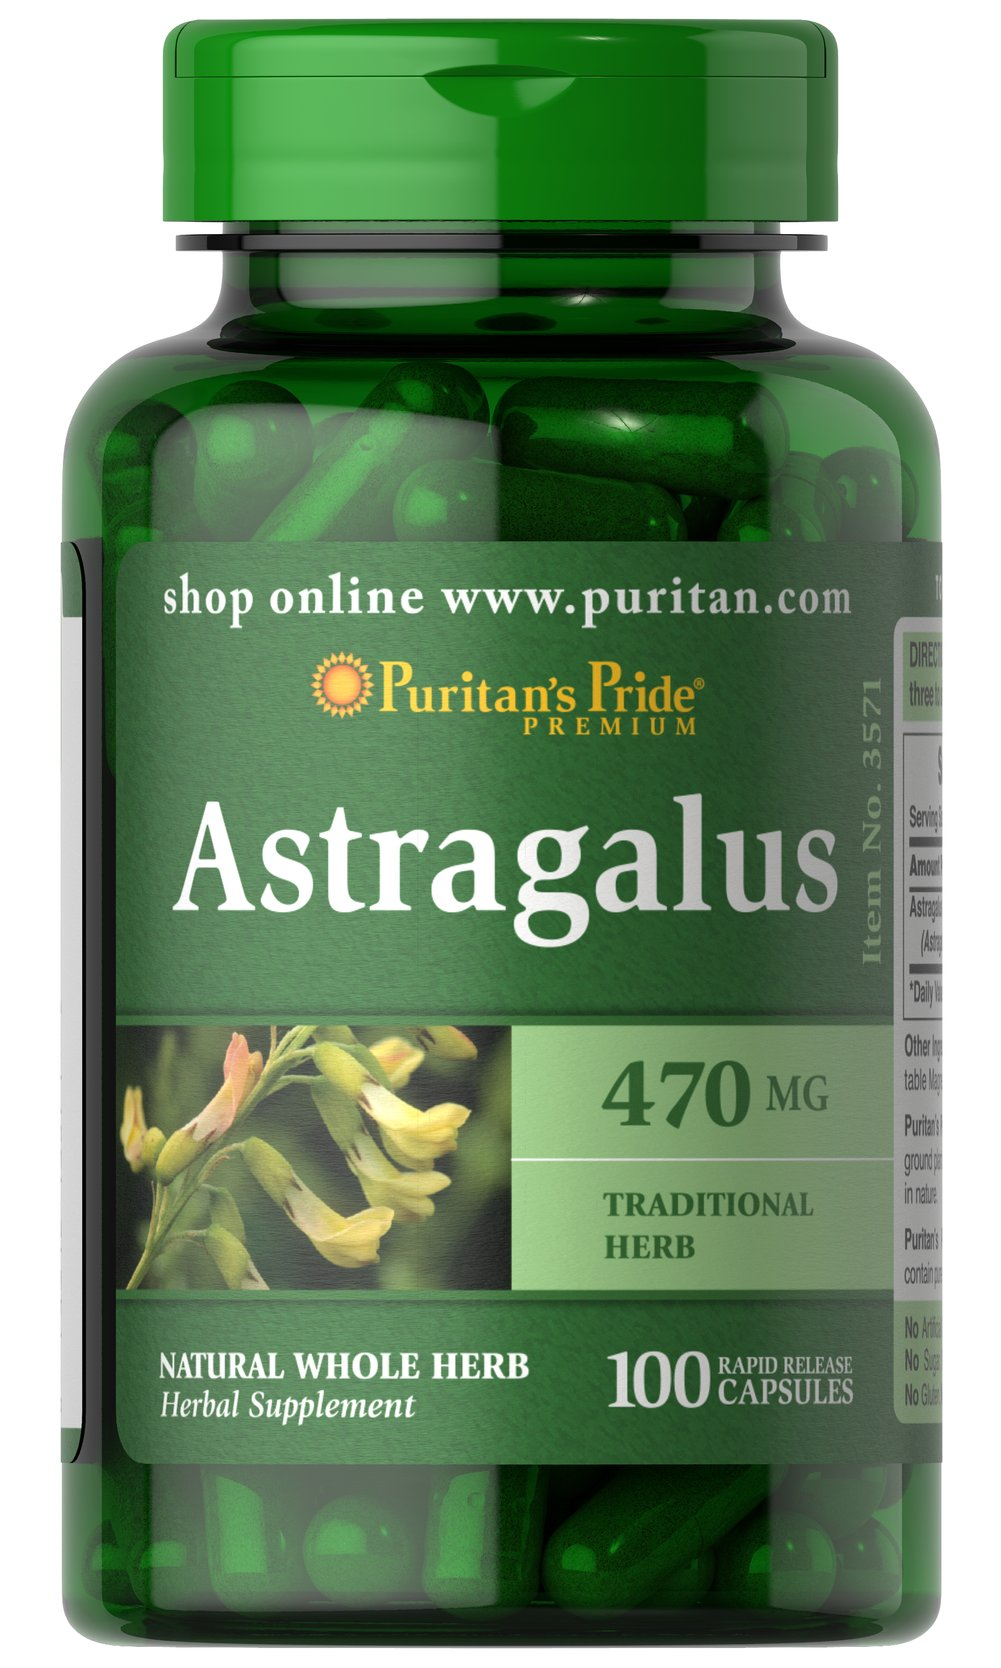 Astragalus 470 mg <p>Traditional Chinese Herb </p><p>Astragalus contains naturally occurring flavonoids and polysaccharides. As a traditional Chinese herb, Astragalus is known for its goodness.</p> 100 Capsules 470 mg $10.29